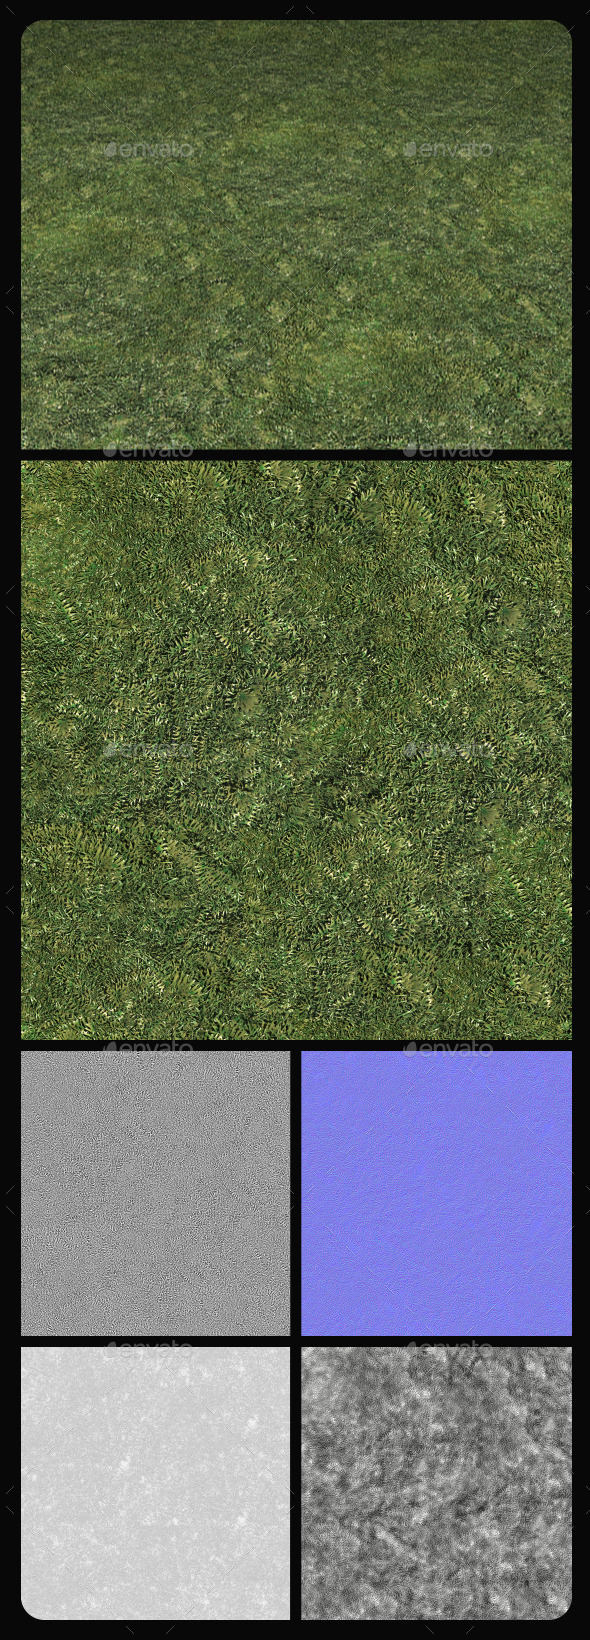 Grass Hi-Res Tile Texture - 3DOcean Item for Sale